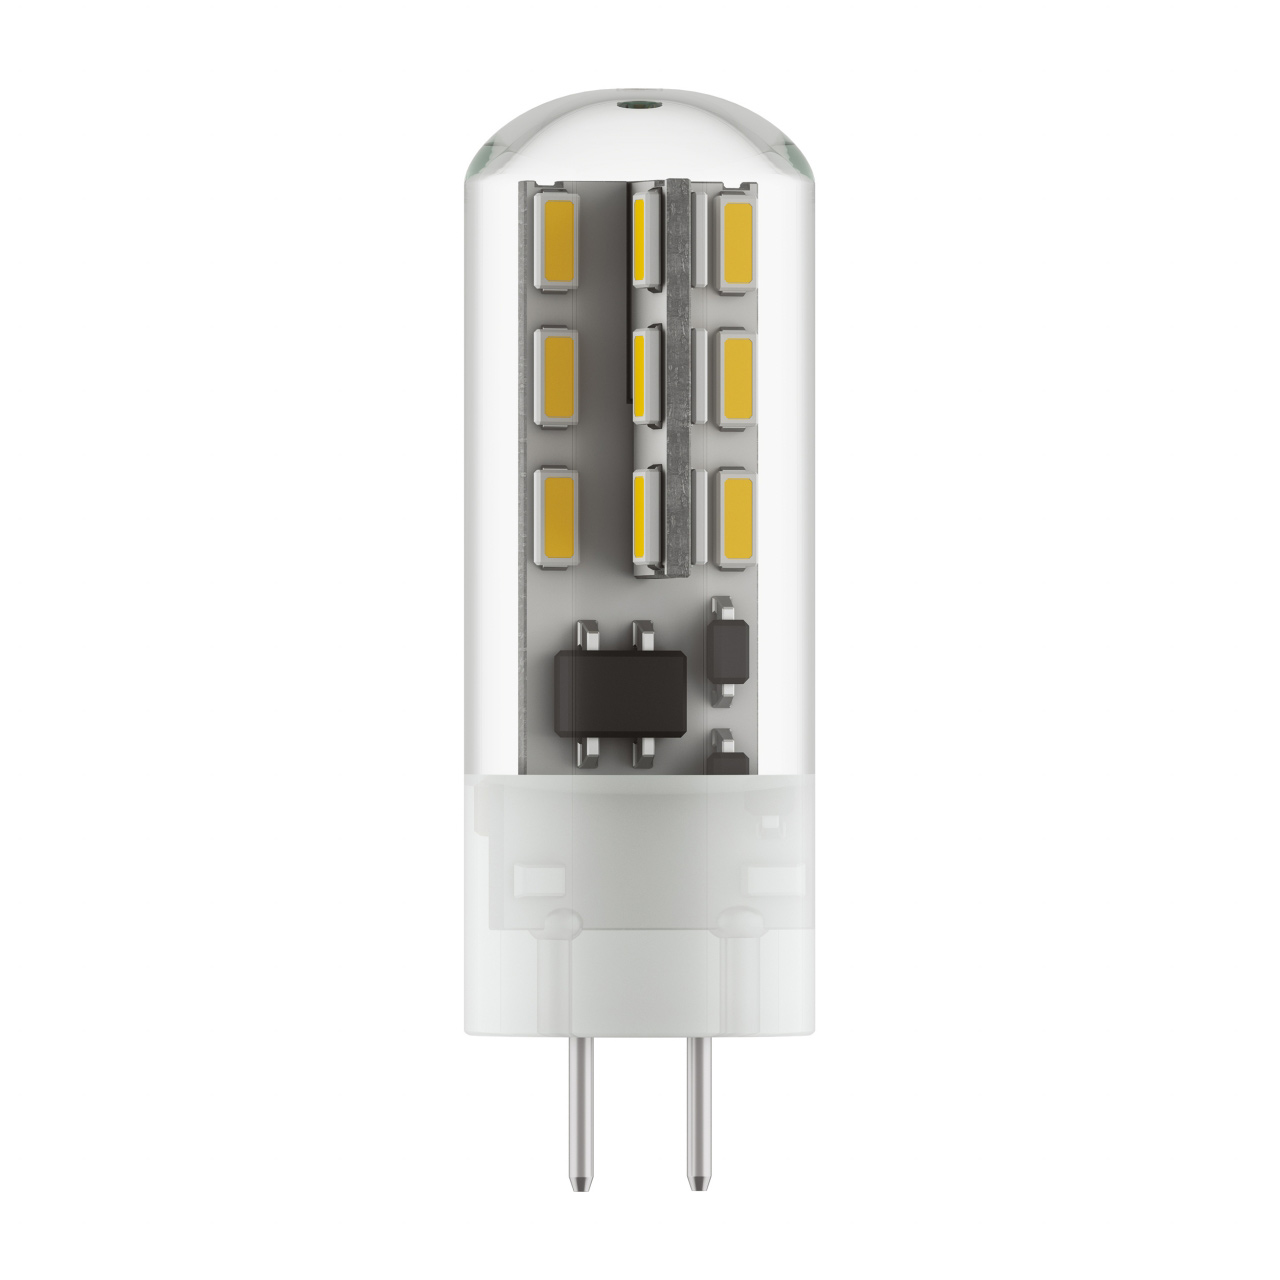 Лампа LED 220V JC G4 1.5W=15W 80LM 360G 4000K 20000H Lightstar 932704